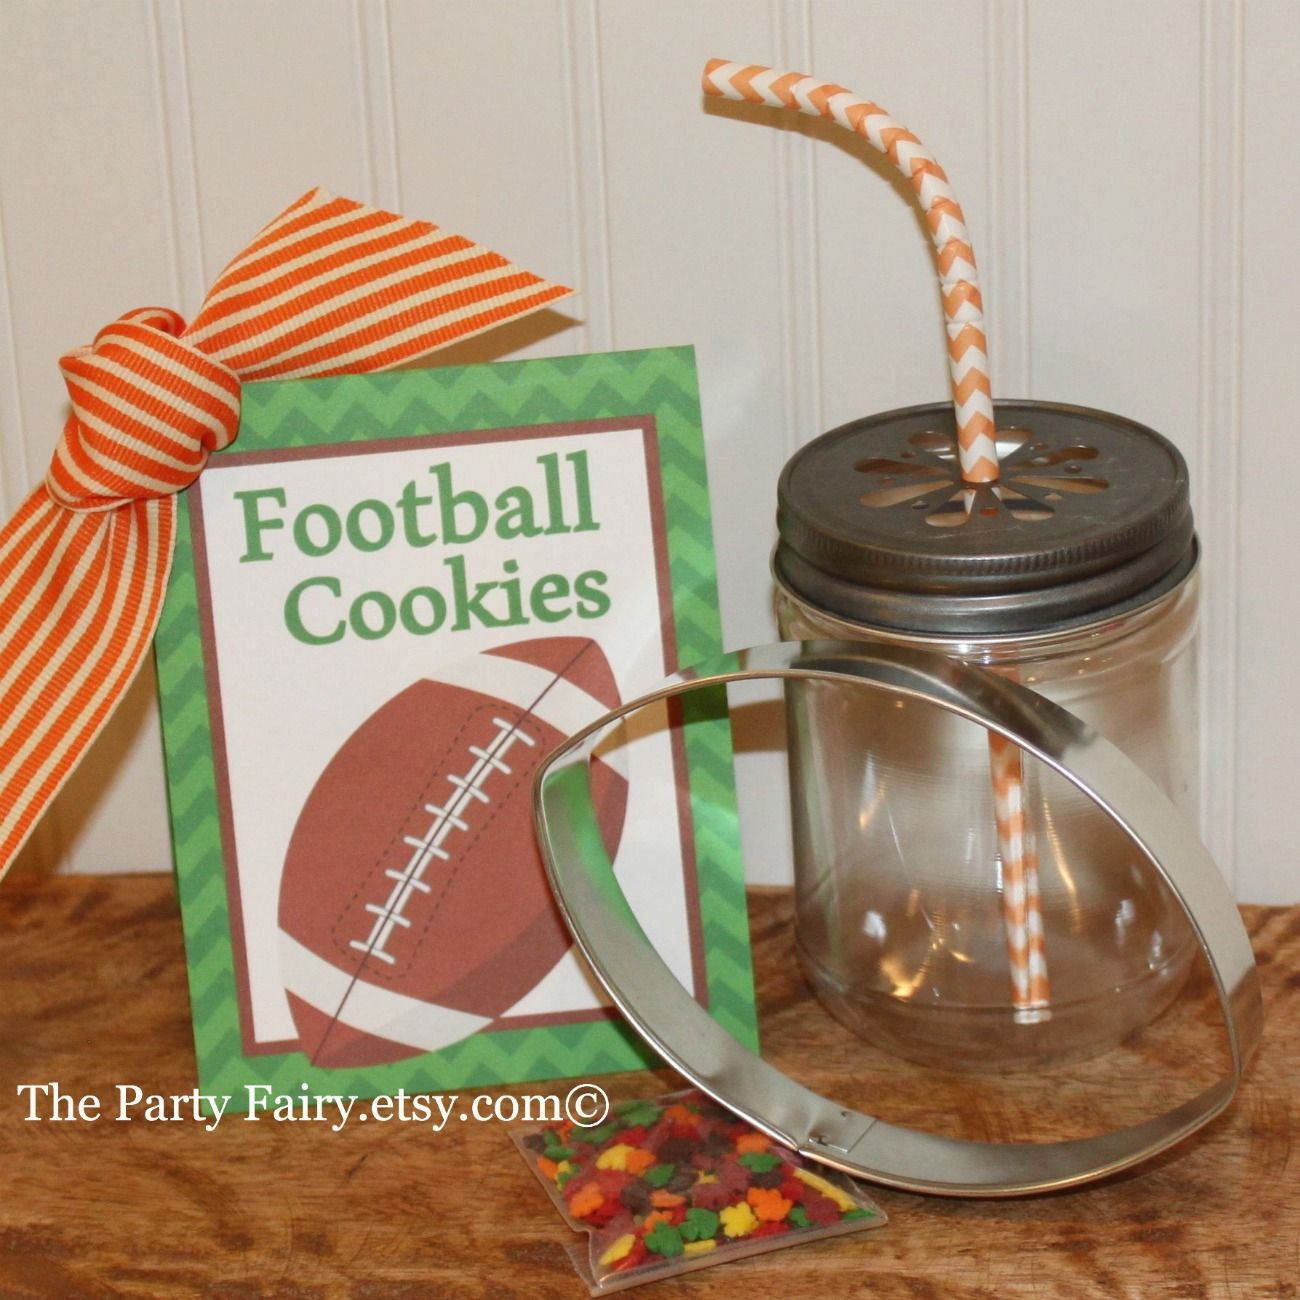 Football cookie cutter with recipe card and sprinkles